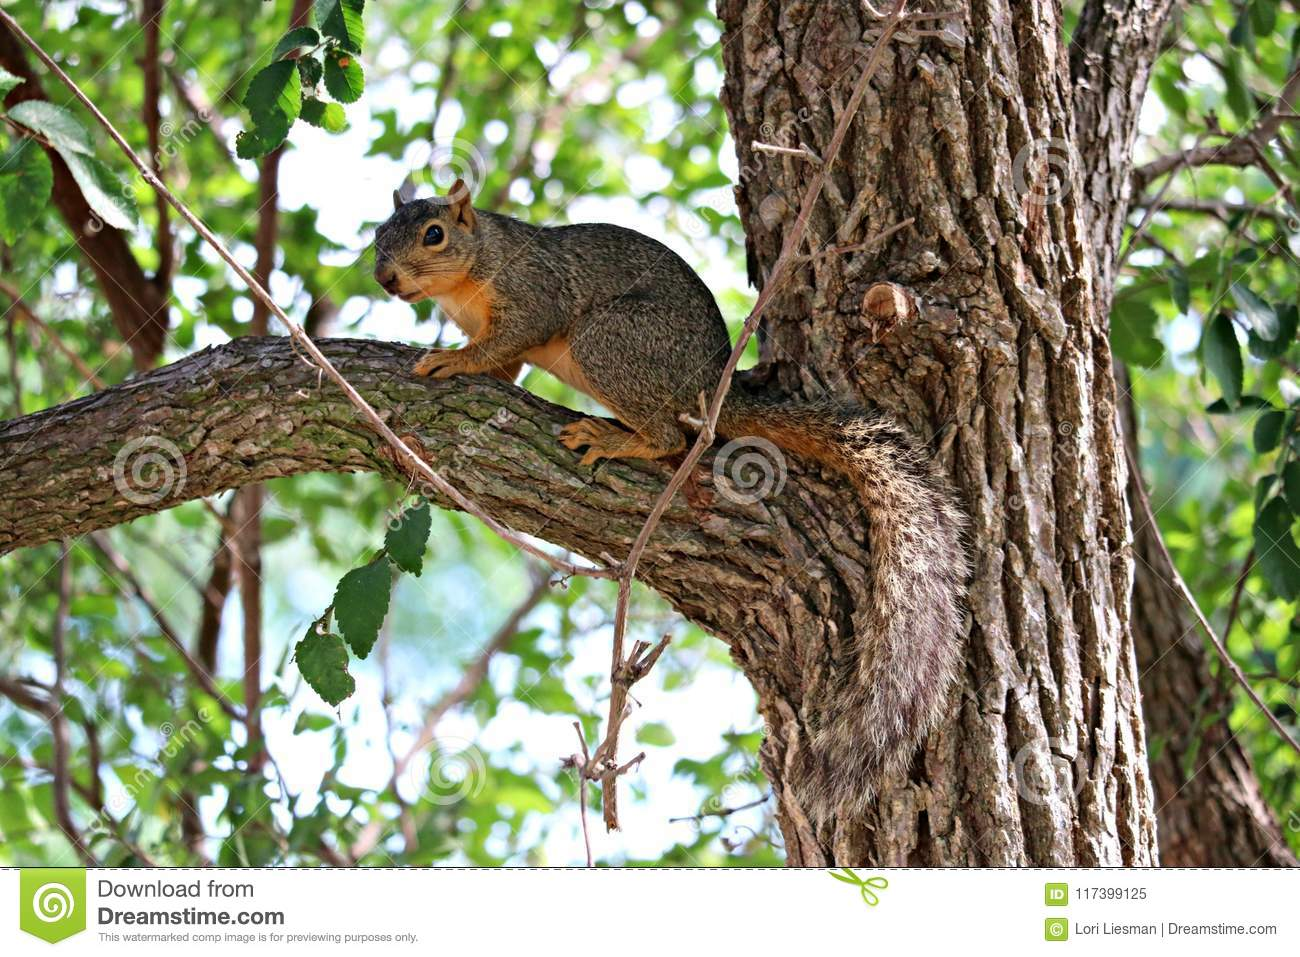 A male fox squirrel standing on a limb in a large oak tree.